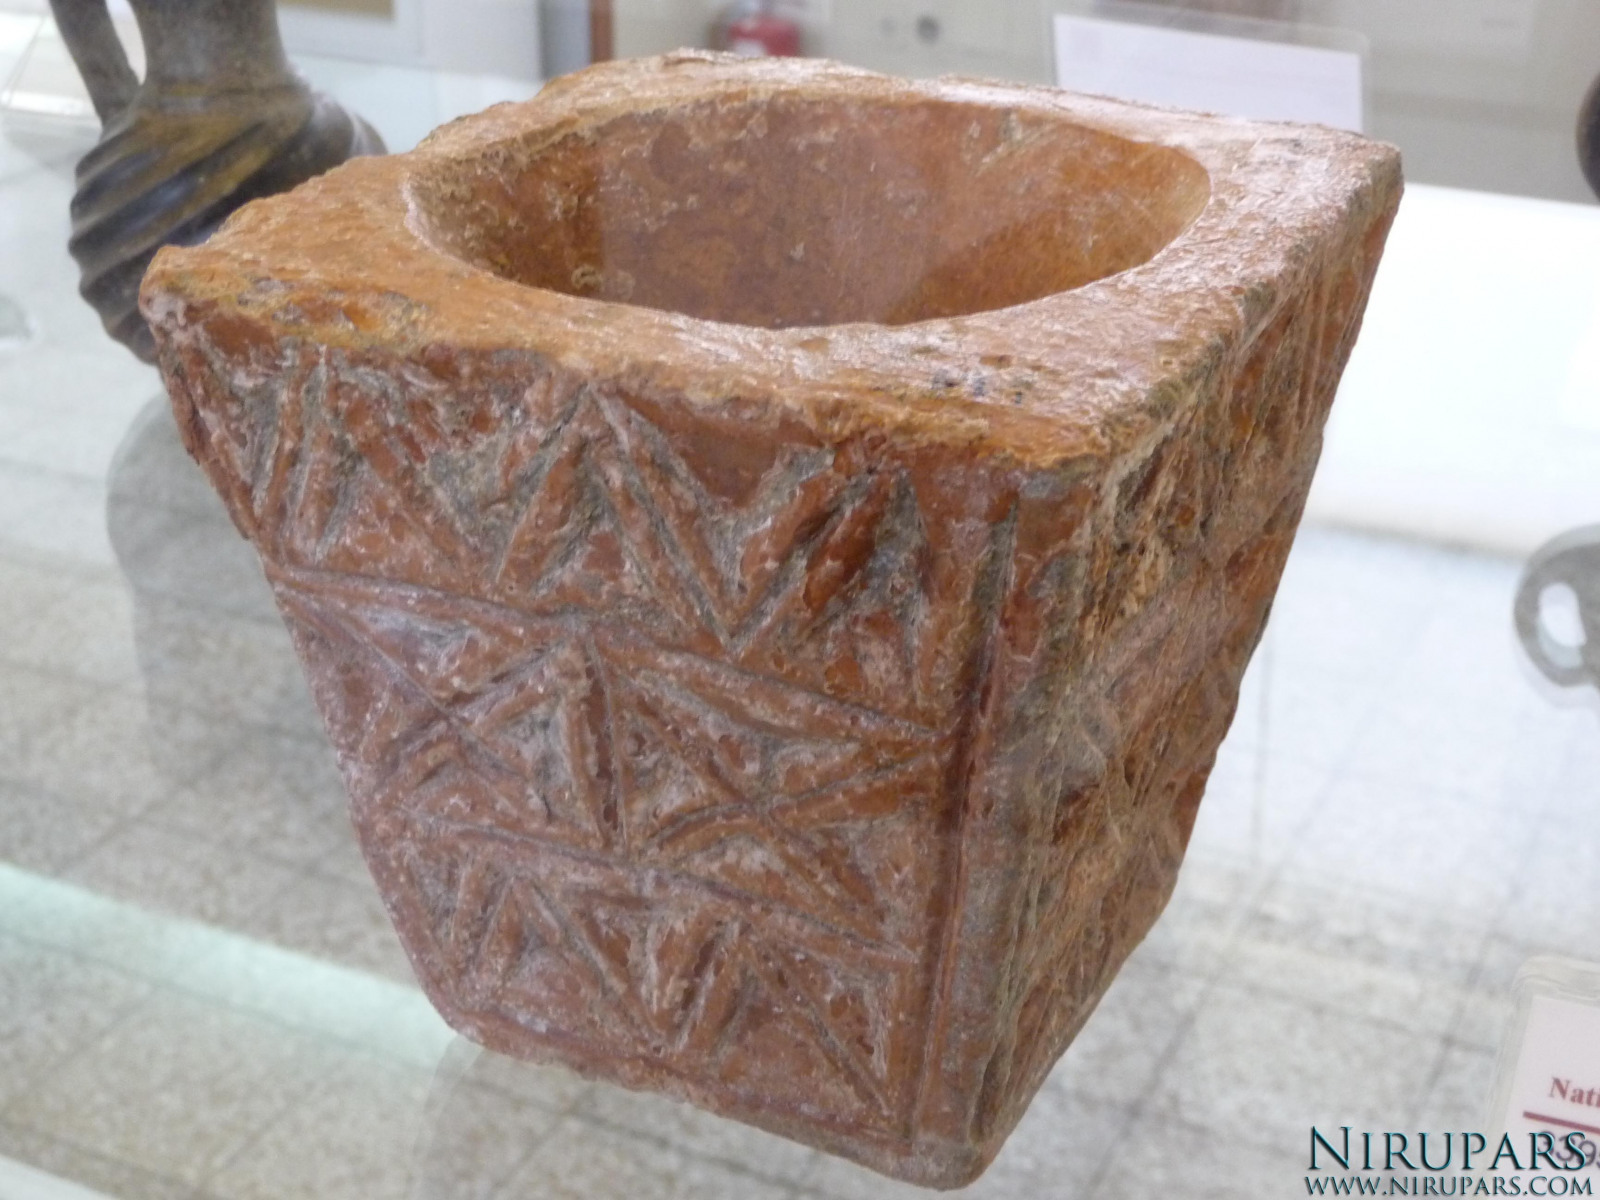 National Museum of Iran - Pottery Mortar